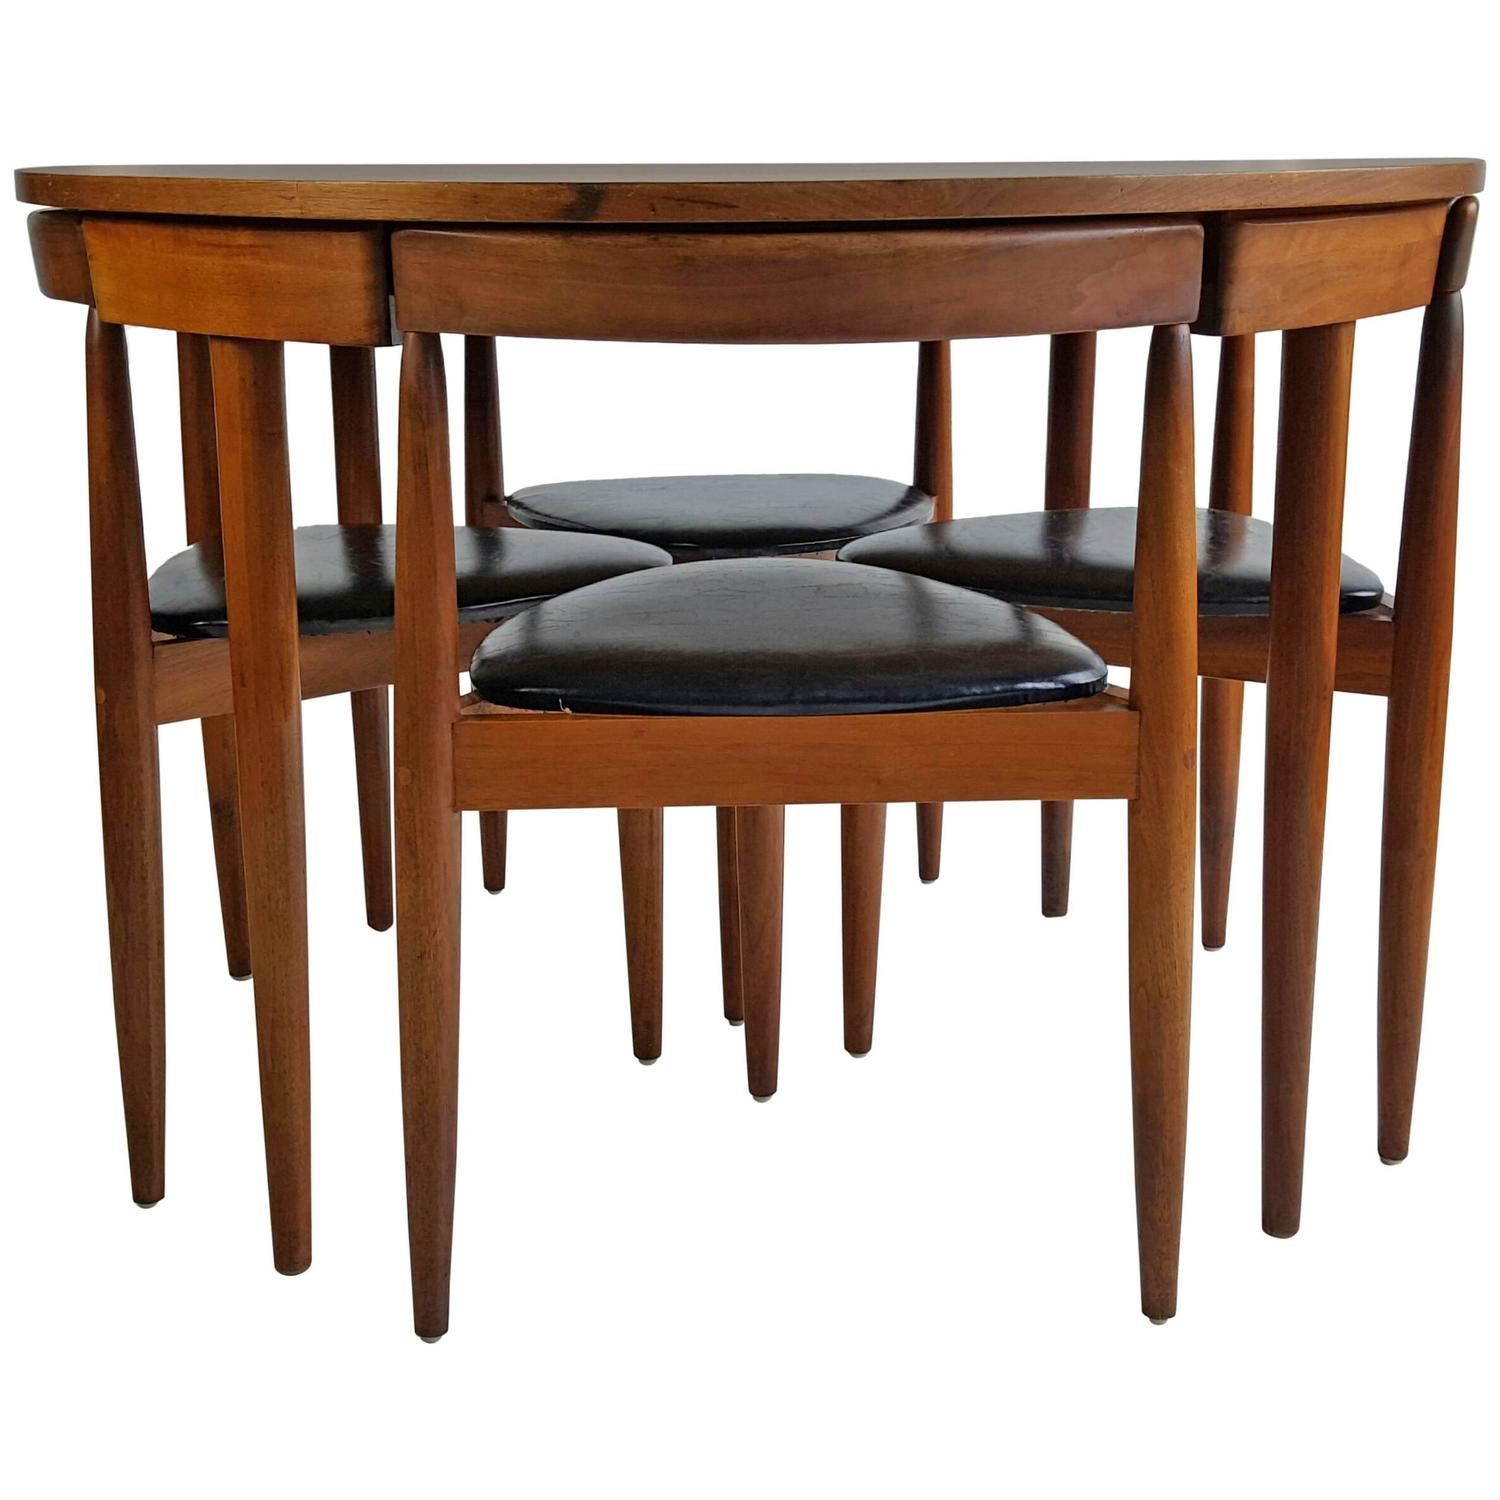 mid century modern dining table four chairs hans olsen frem rojle at 1stdibs. Black Bedroom Furniture Sets. Home Design Ideas